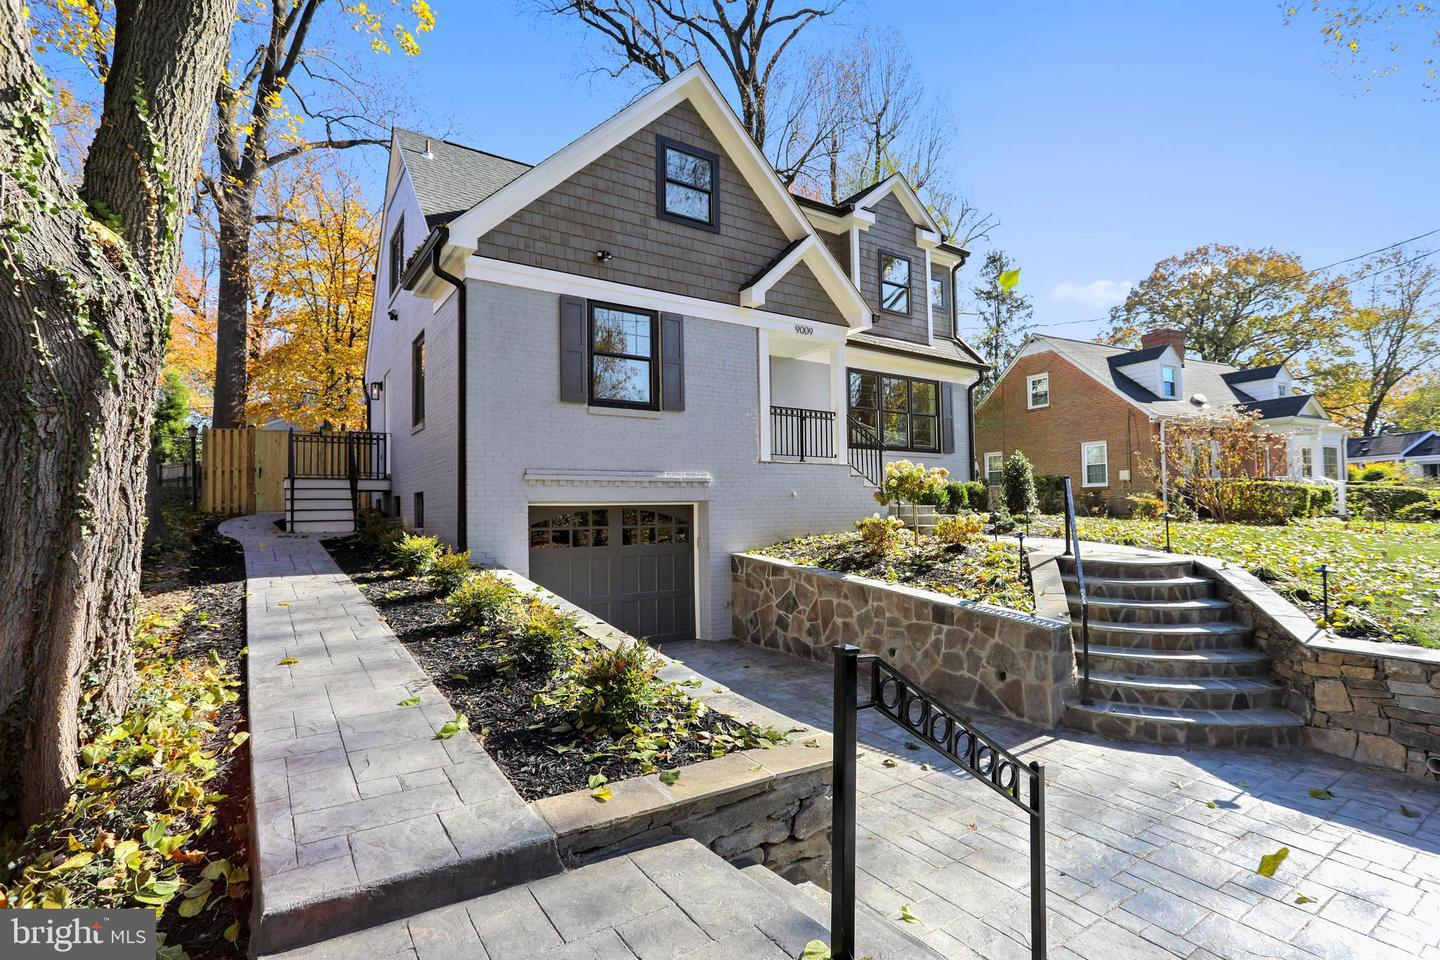 9009 KENSINGTON PARKWAY, CHEVY CHASE, Maryland